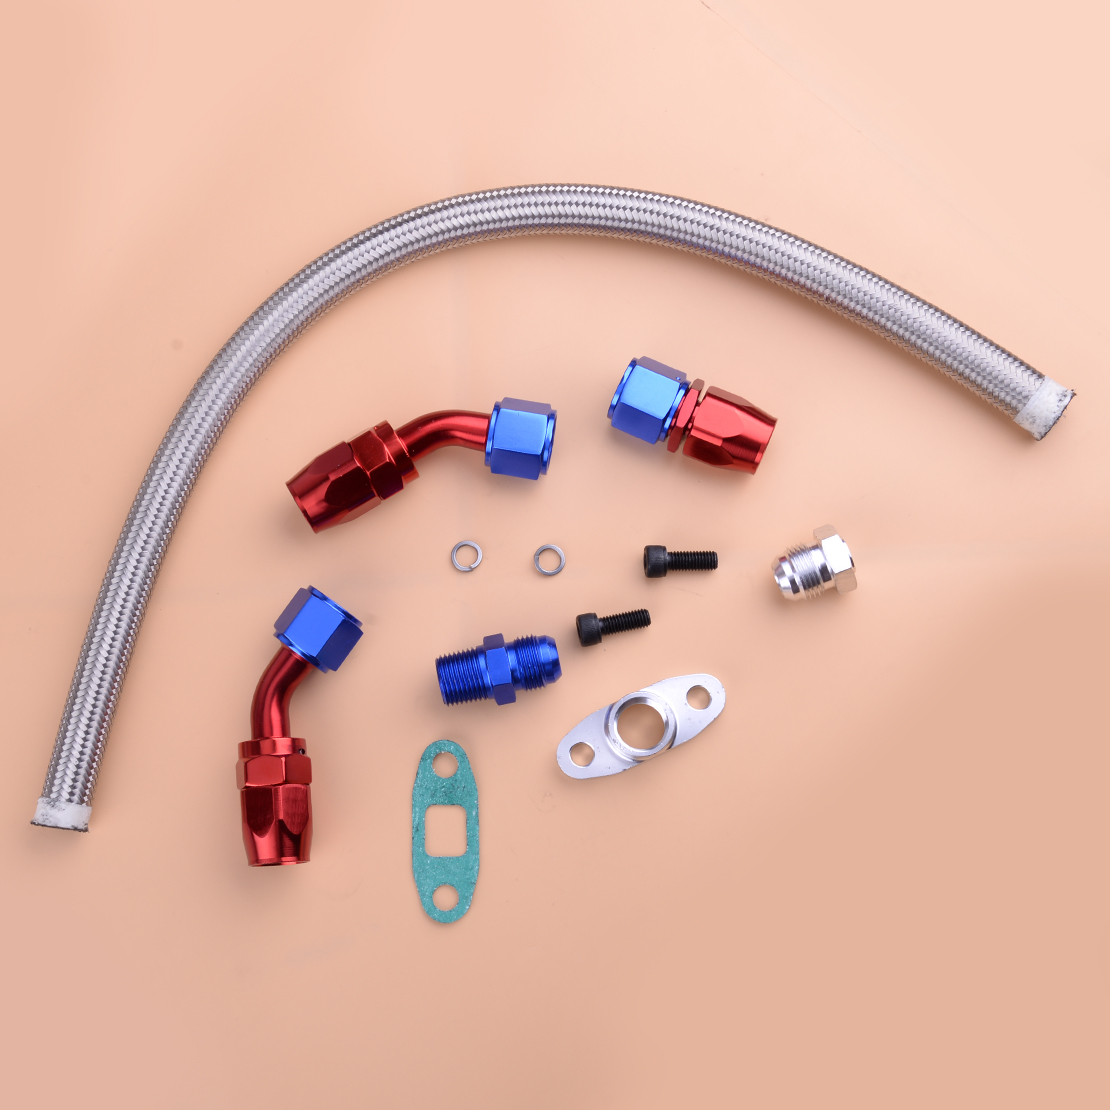 beler New Durable Oil Return Drain Line Kit for <font><b>Turbo</b></font> Charger for T3 T4 T70 <font><b>T66</b></font> TO4E Accessories image